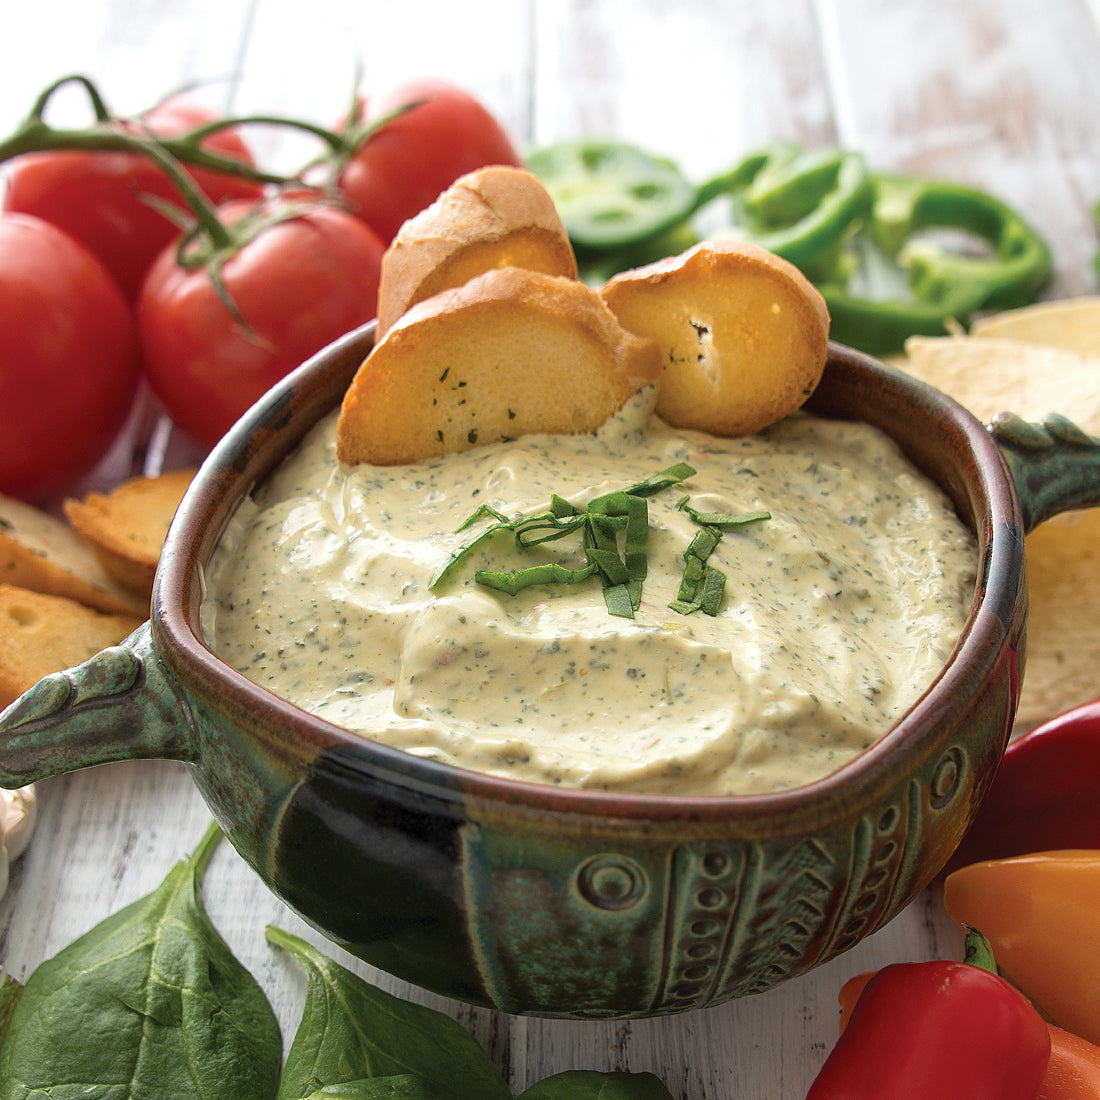 Spinach Artichoke Dip mixed with sour cream and served with veggies.